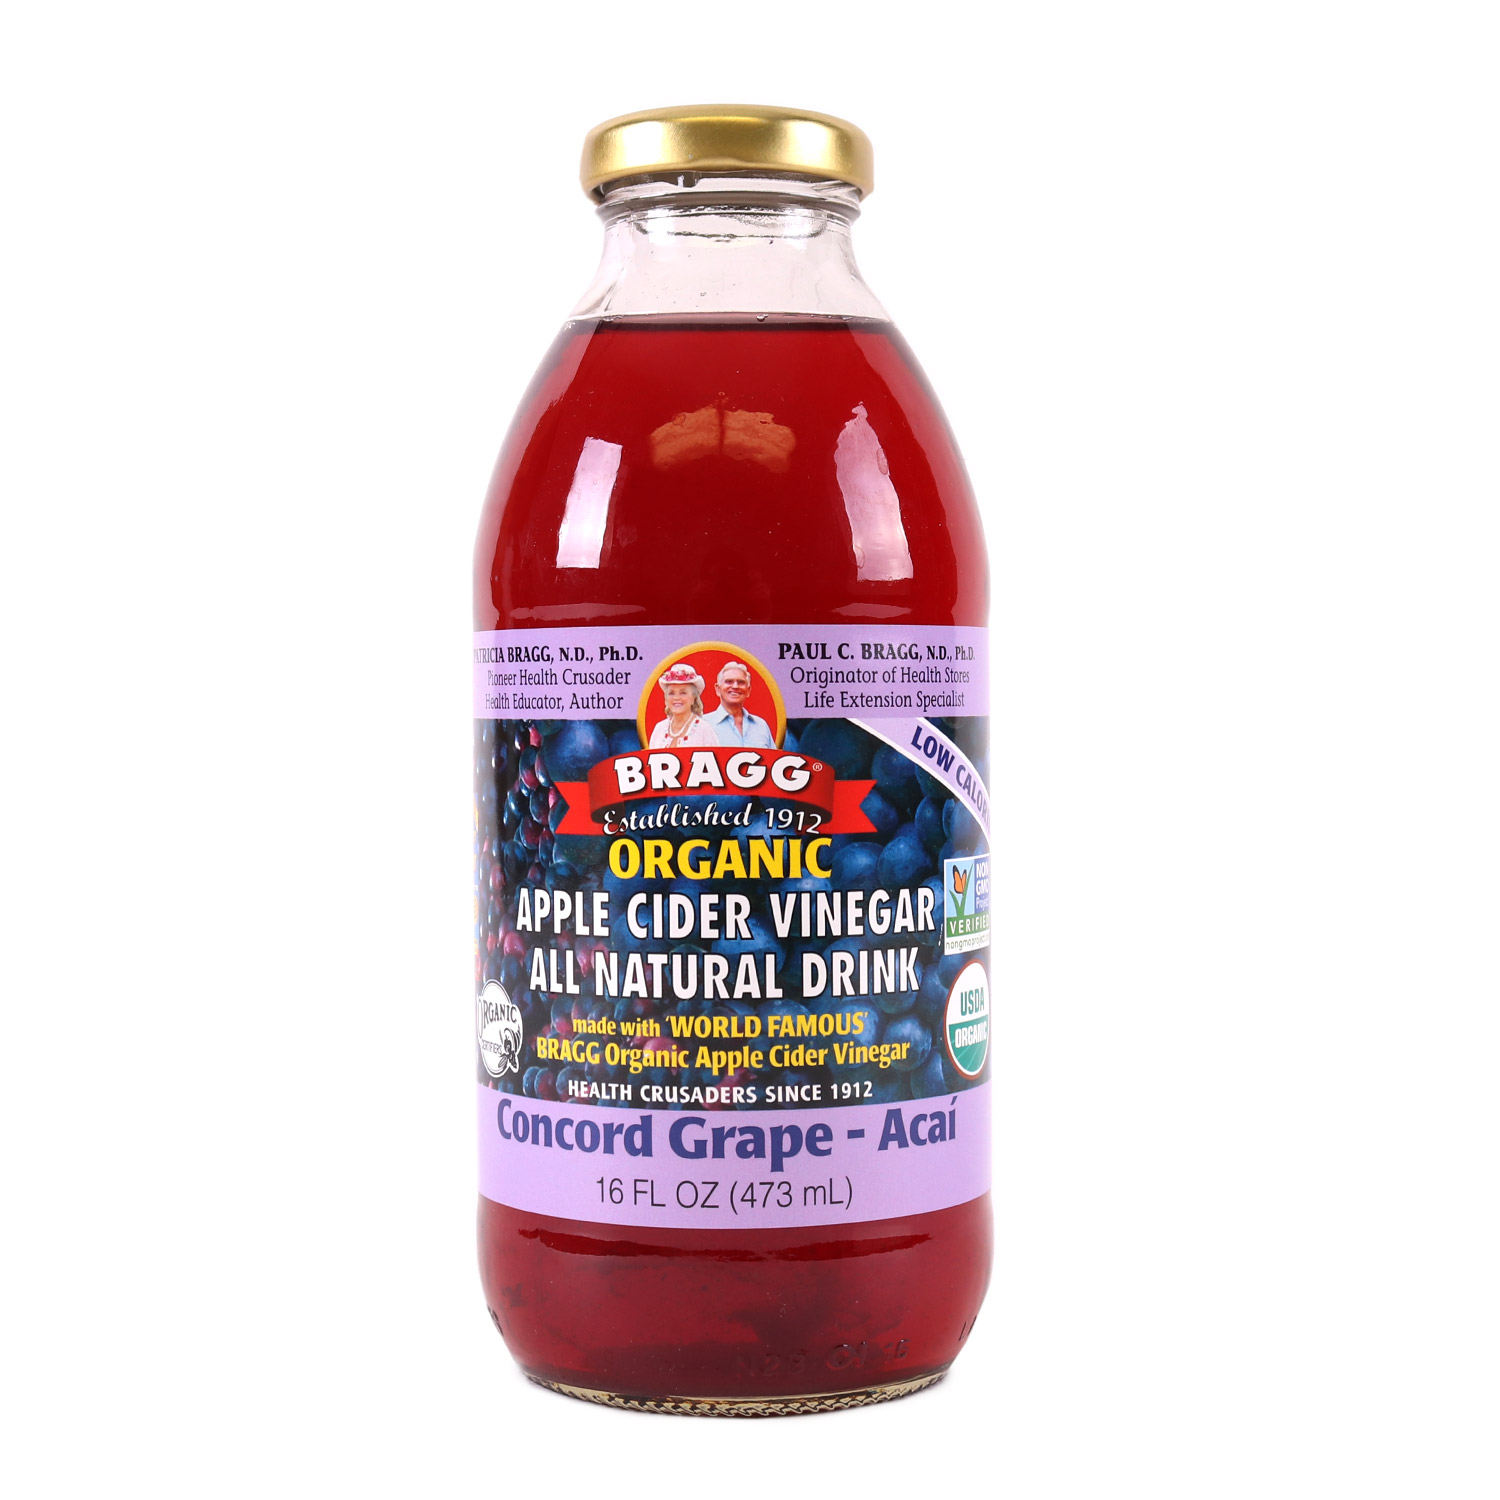 Apple Cider Vinegar Drink, Concord Grape Acai-Organic